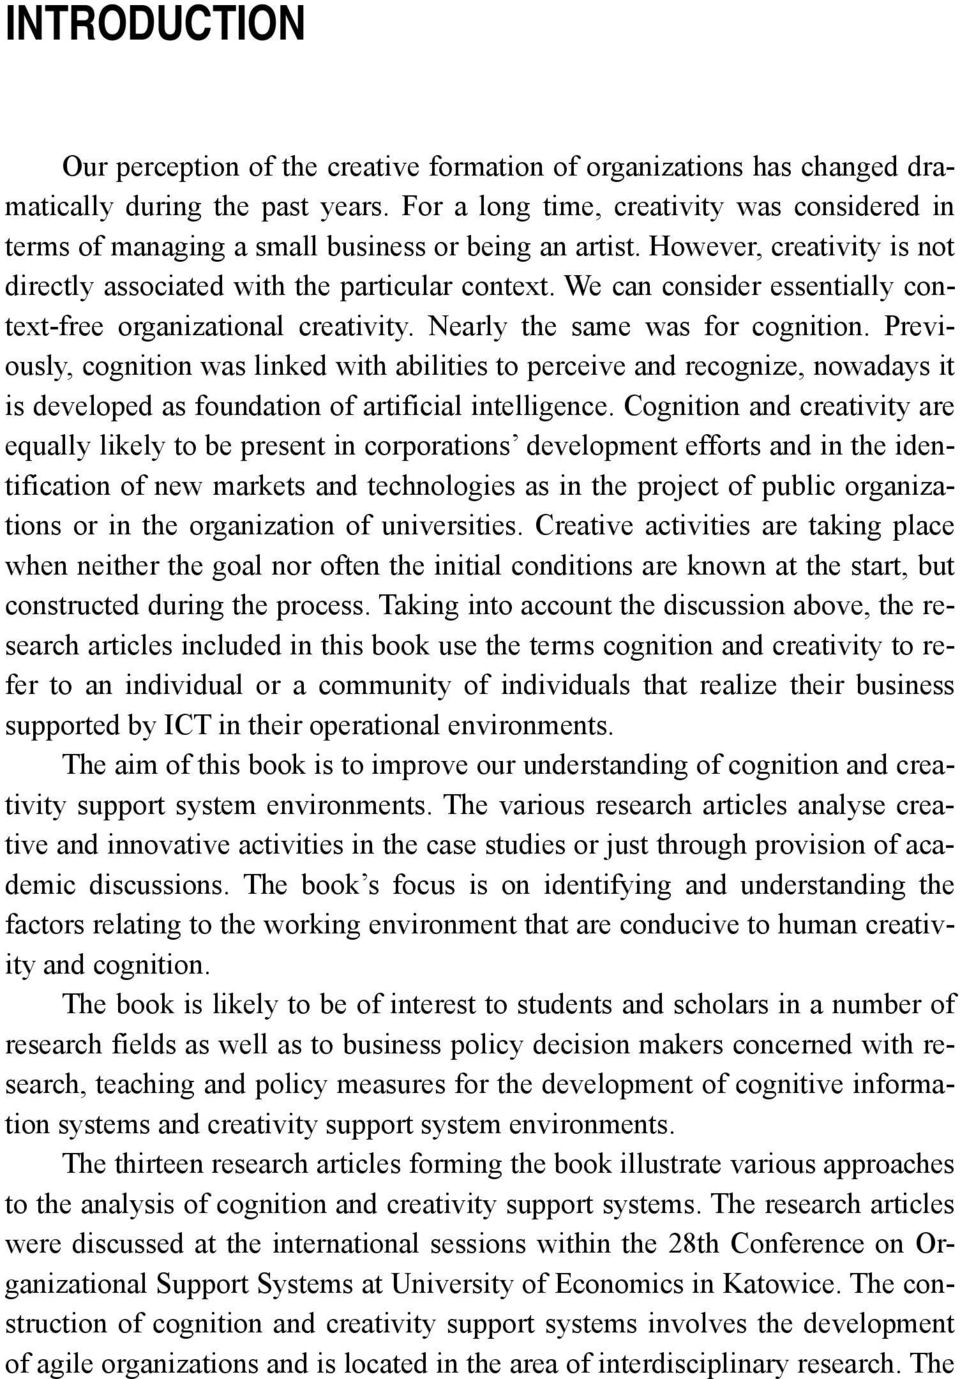 We can consider essentially context-free organizational creativity. Nearly the same was for cognition.